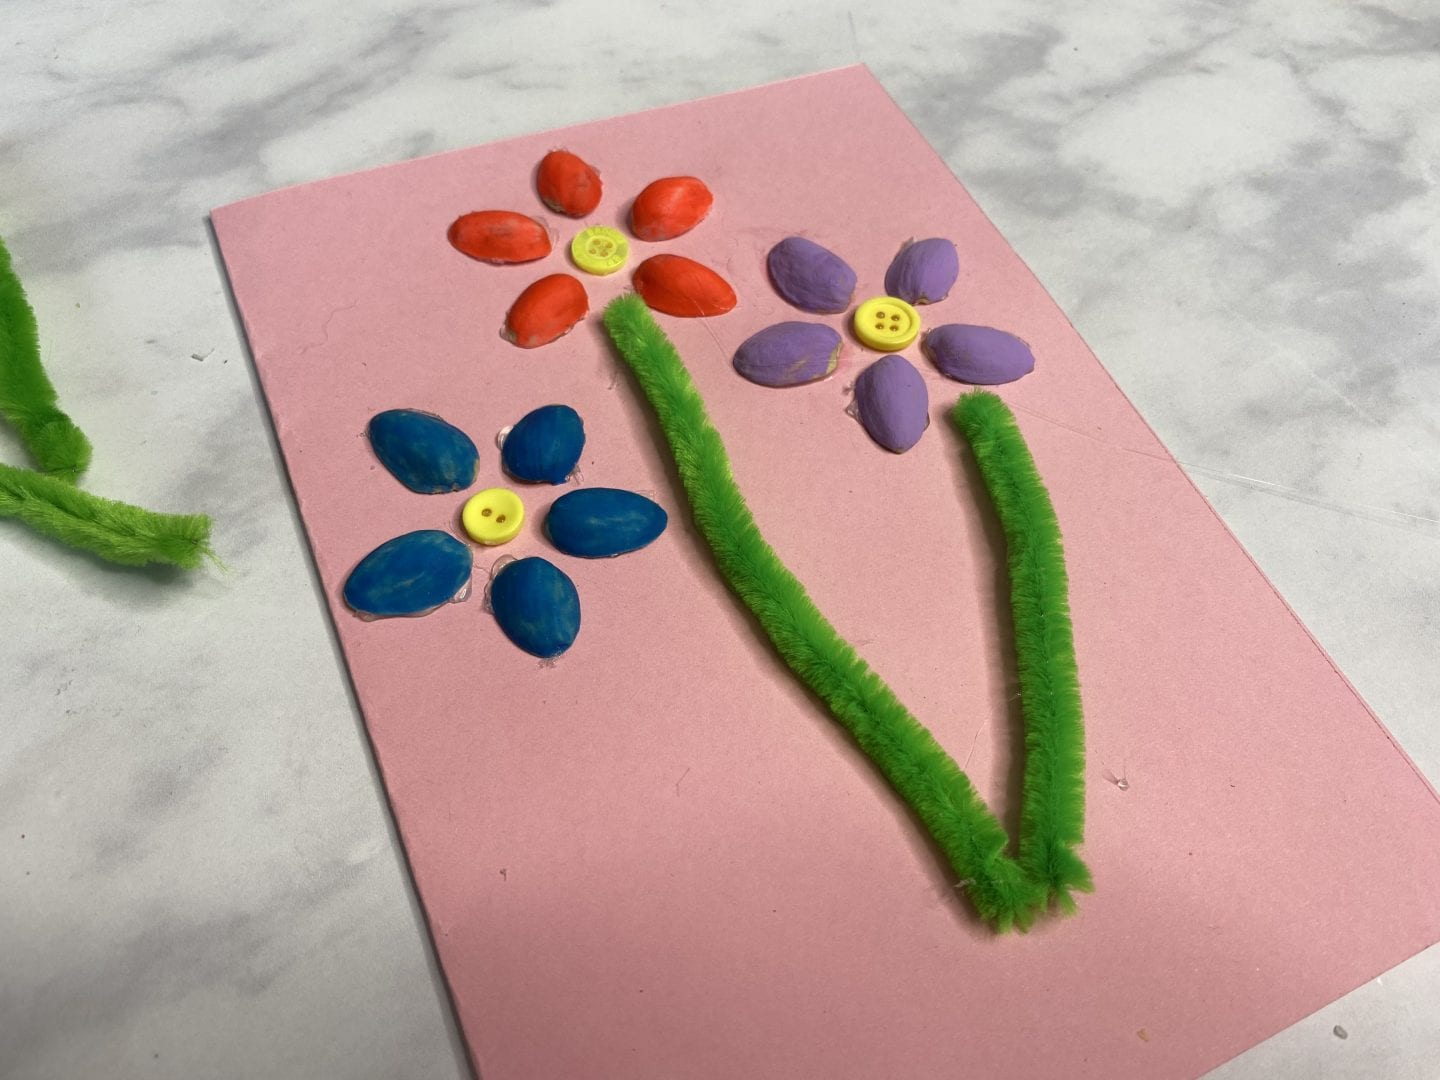 half finsihed card. sticking on pipe cleaners for the flower stems.